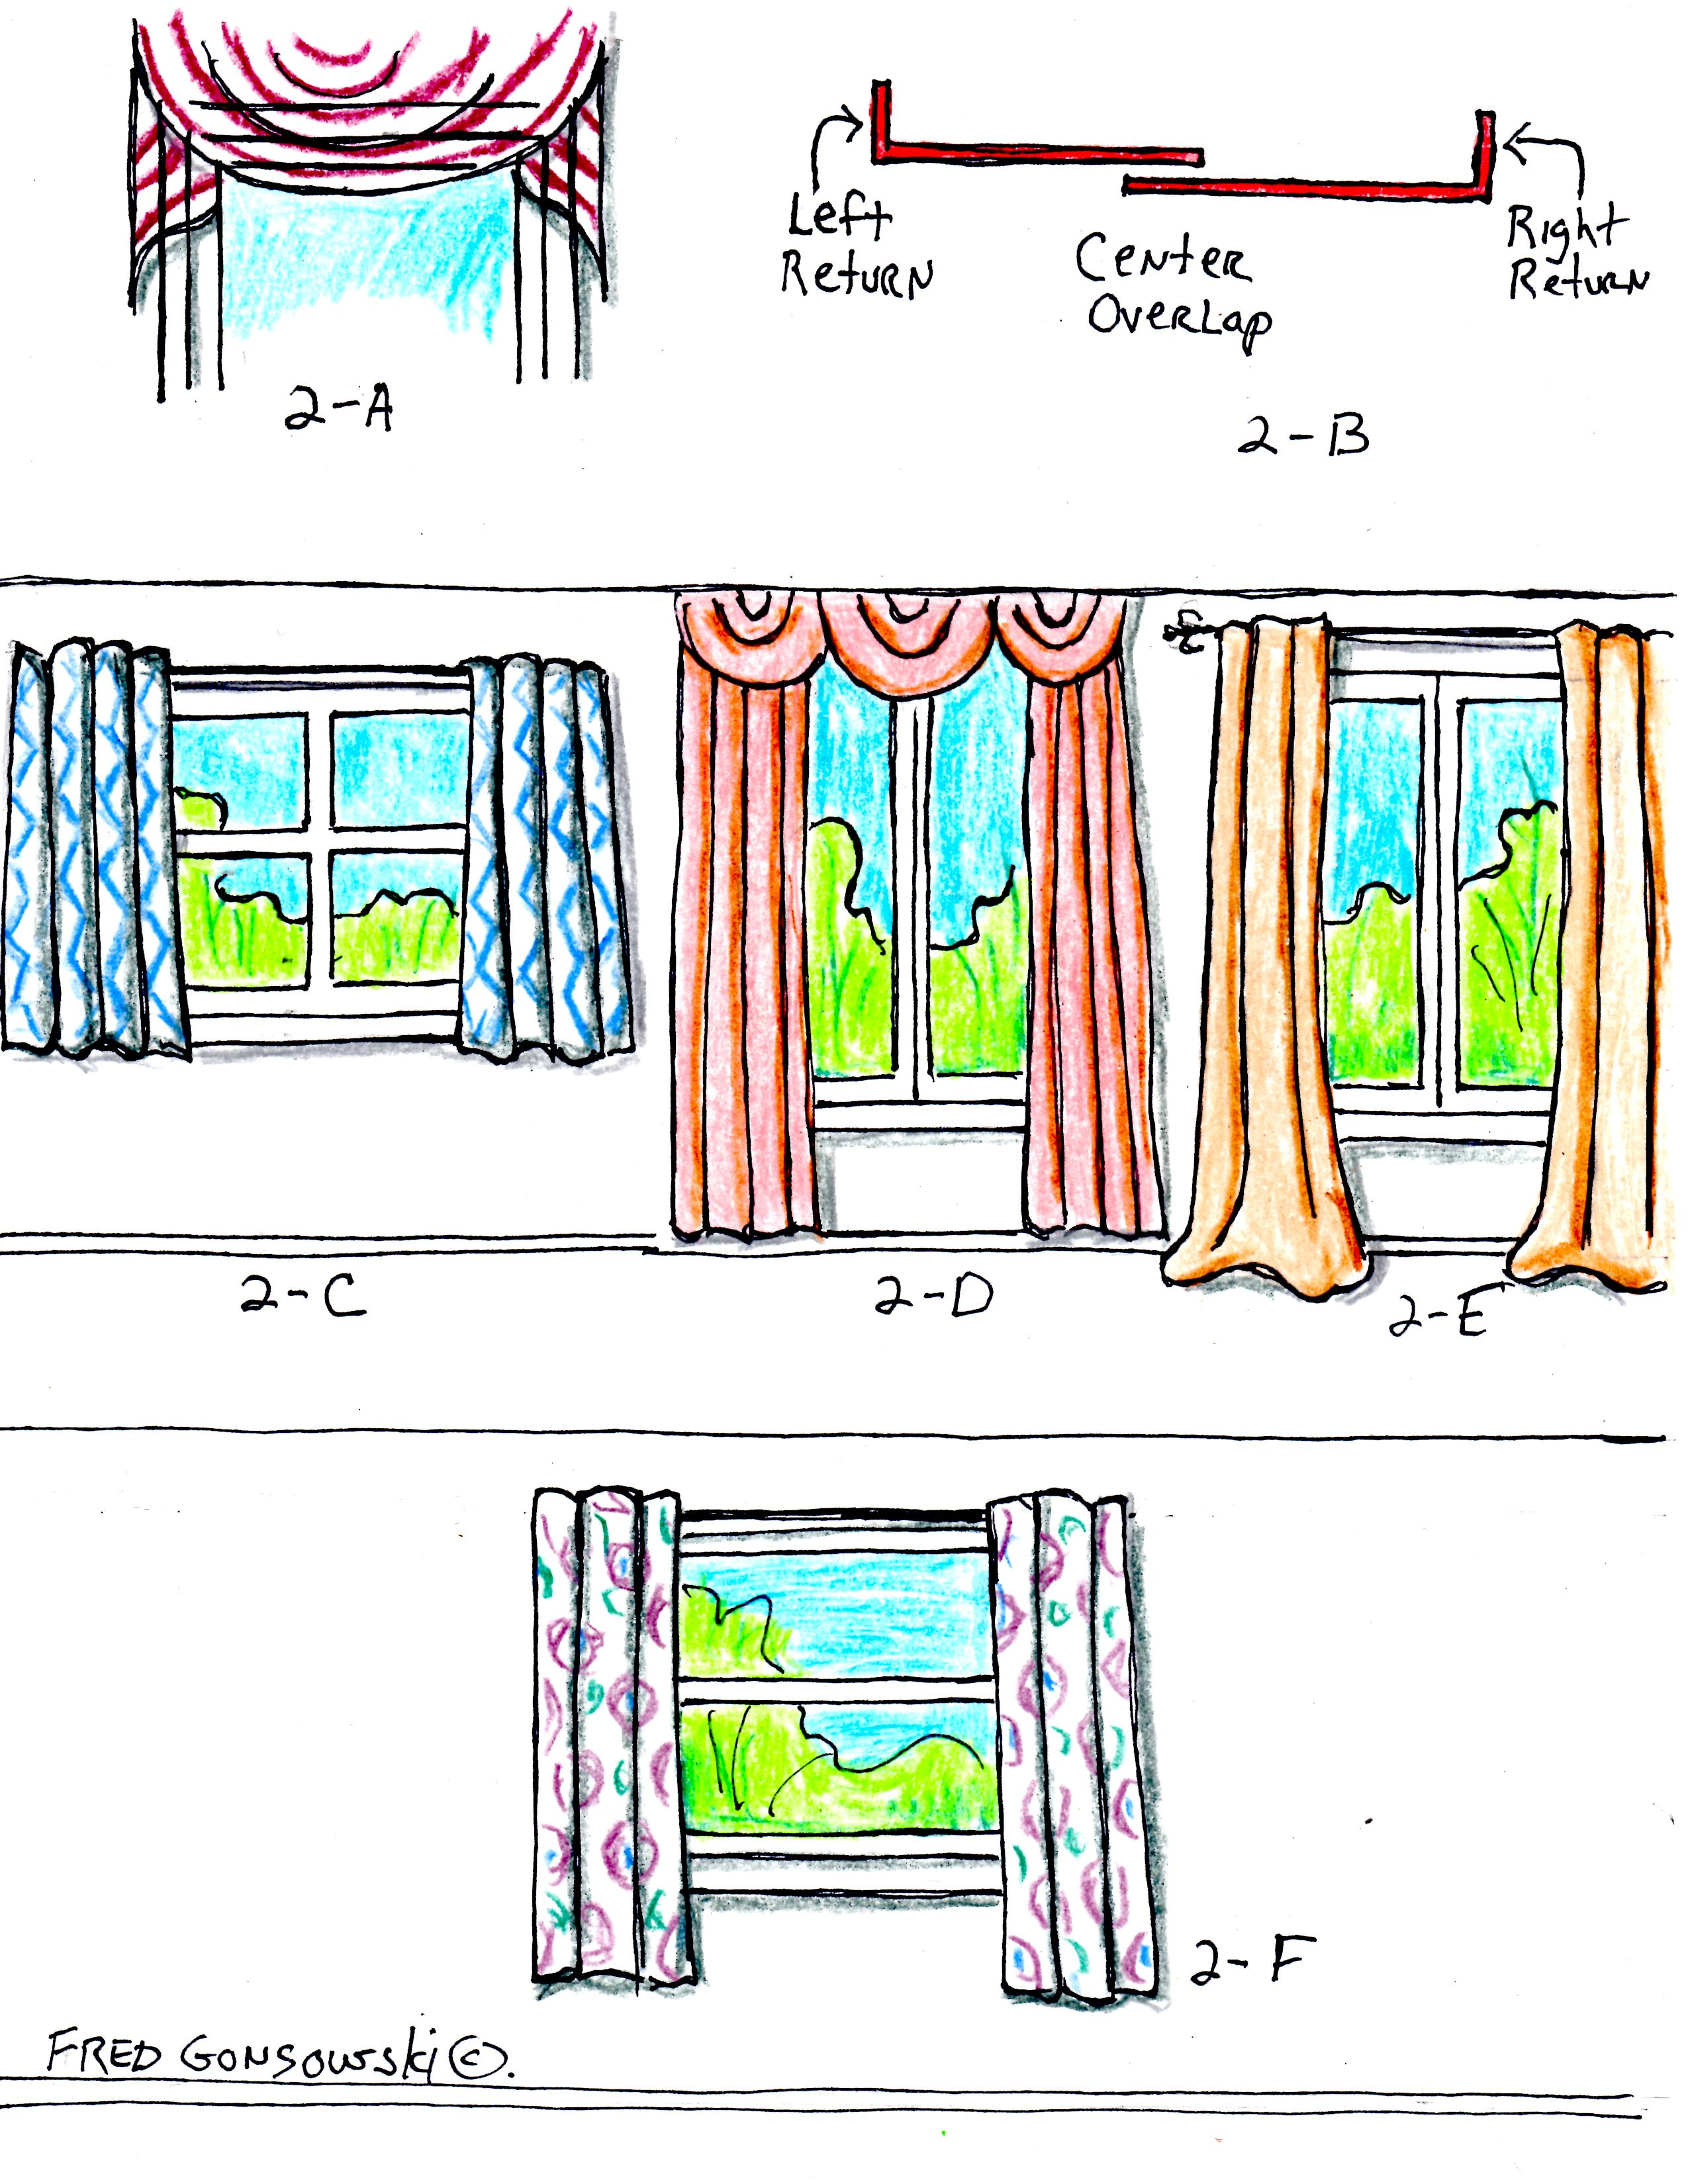 The Right Way To Hang Curtains And Drapes Fred